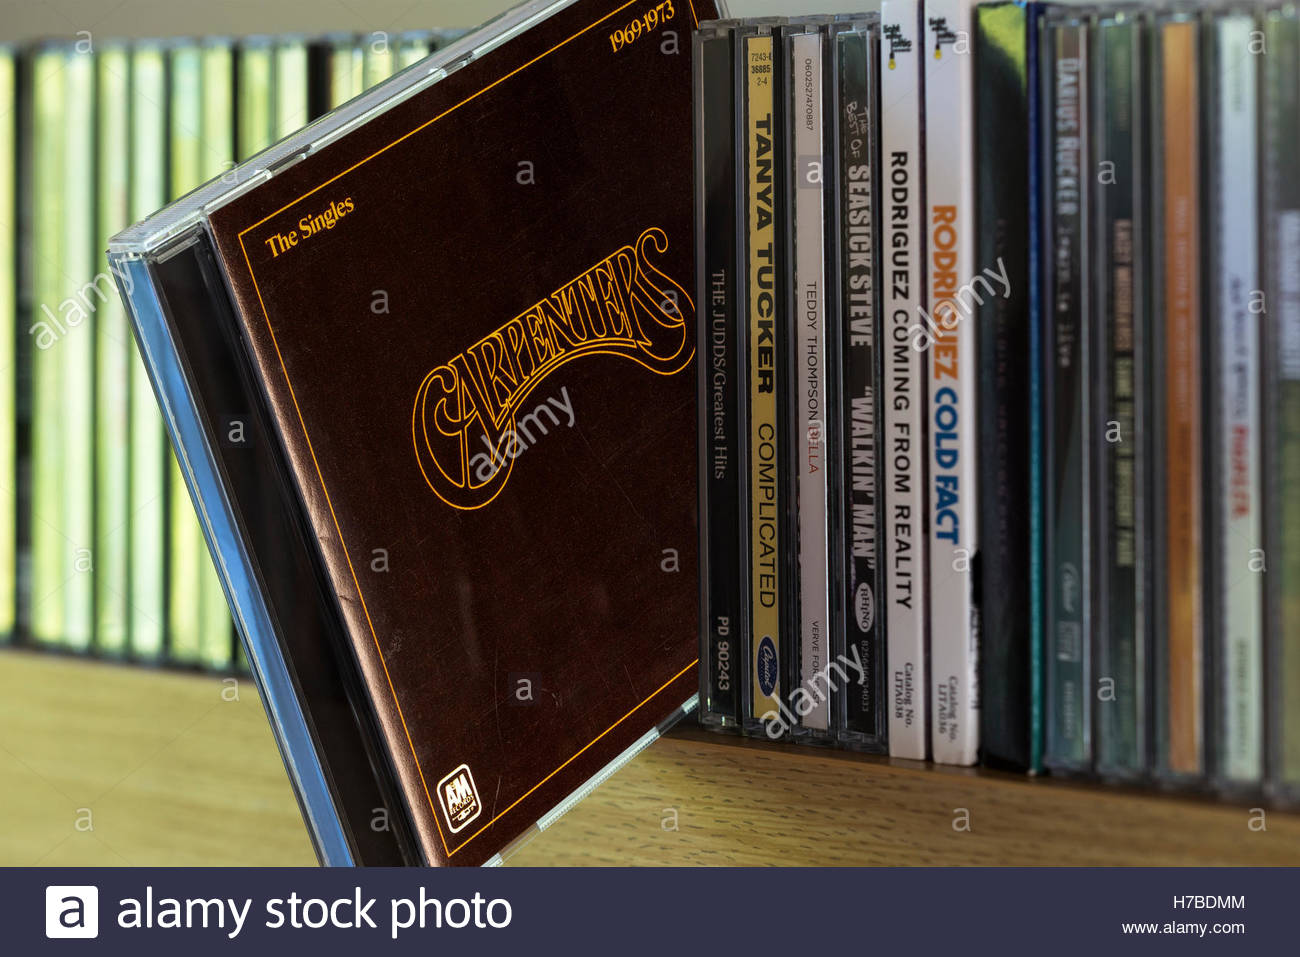 The Carpenters Singles 1969-1973 CD being chosen from a shelf of other CD's Stock Photo